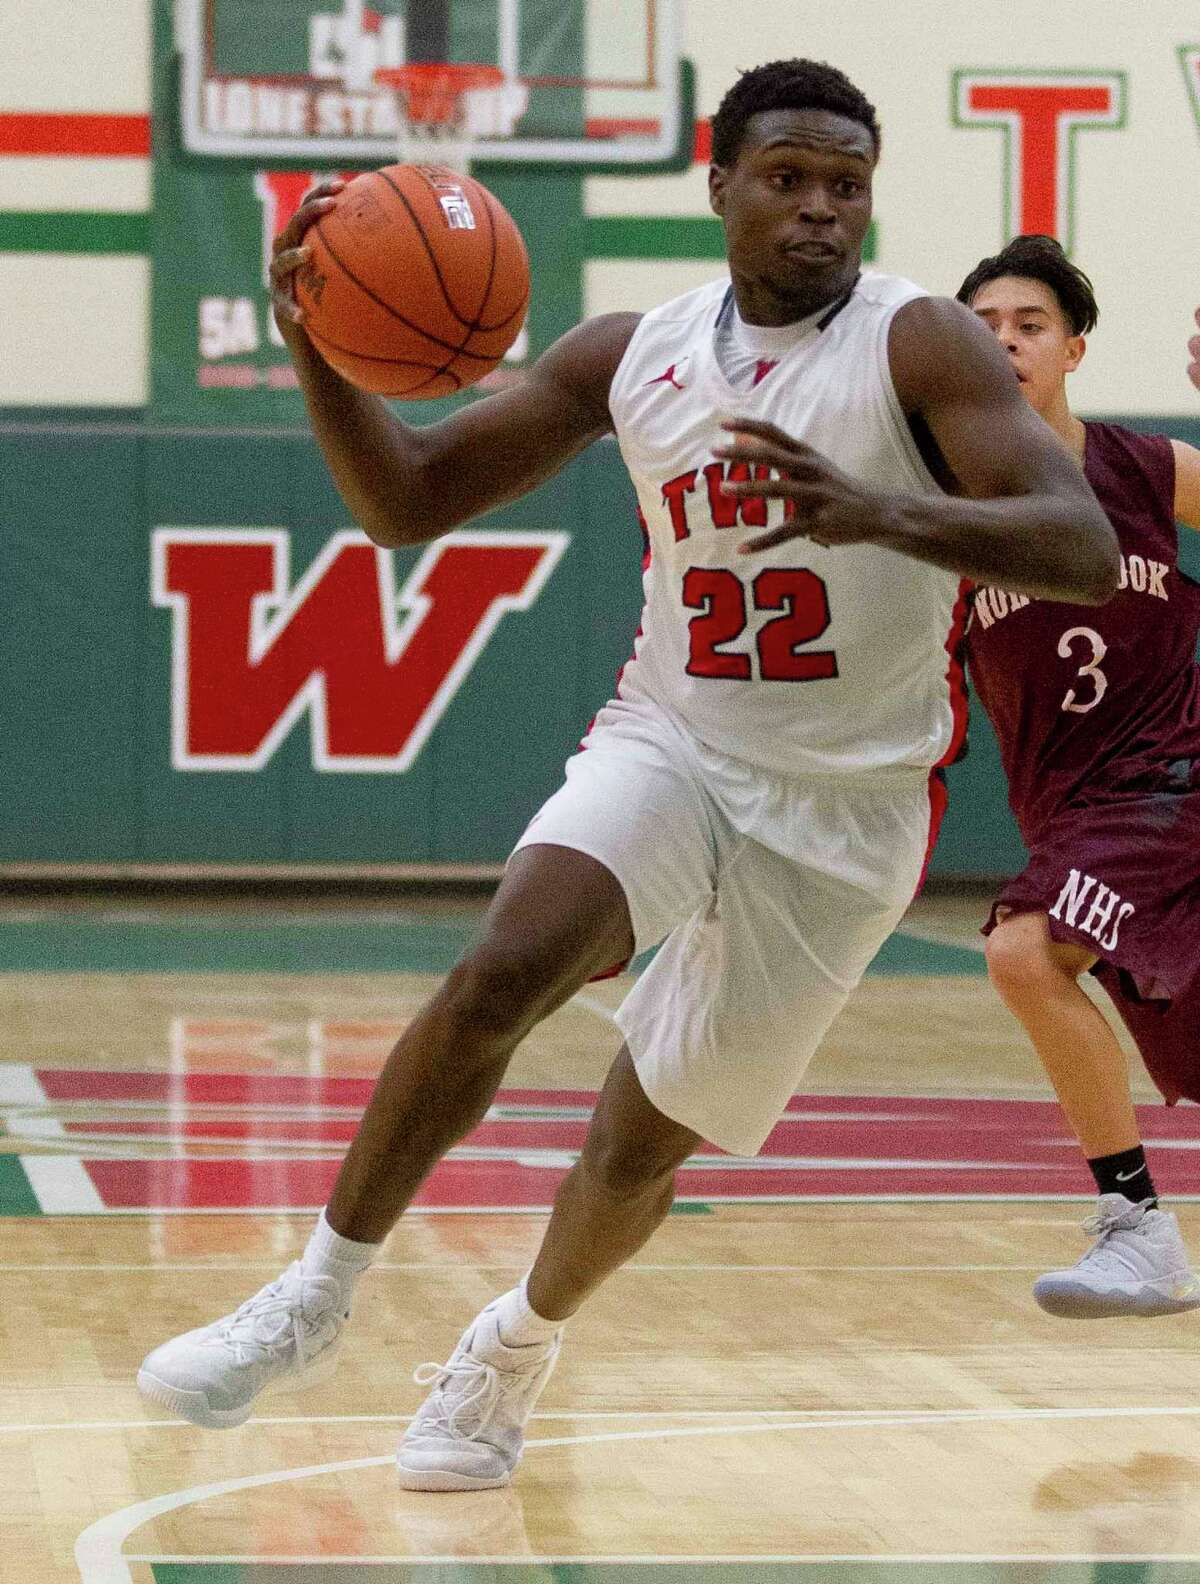 The Woodlands guard Romello Wilbert (22) drives the ball toward the paint in the second quarter of a high school boys basketball game during the Guy V. Lewis Invitational at The Woodlands High School Friday, Nov. 25, 2016, in The Woodlands. The Woodlands defeated Northbrook 81-34.